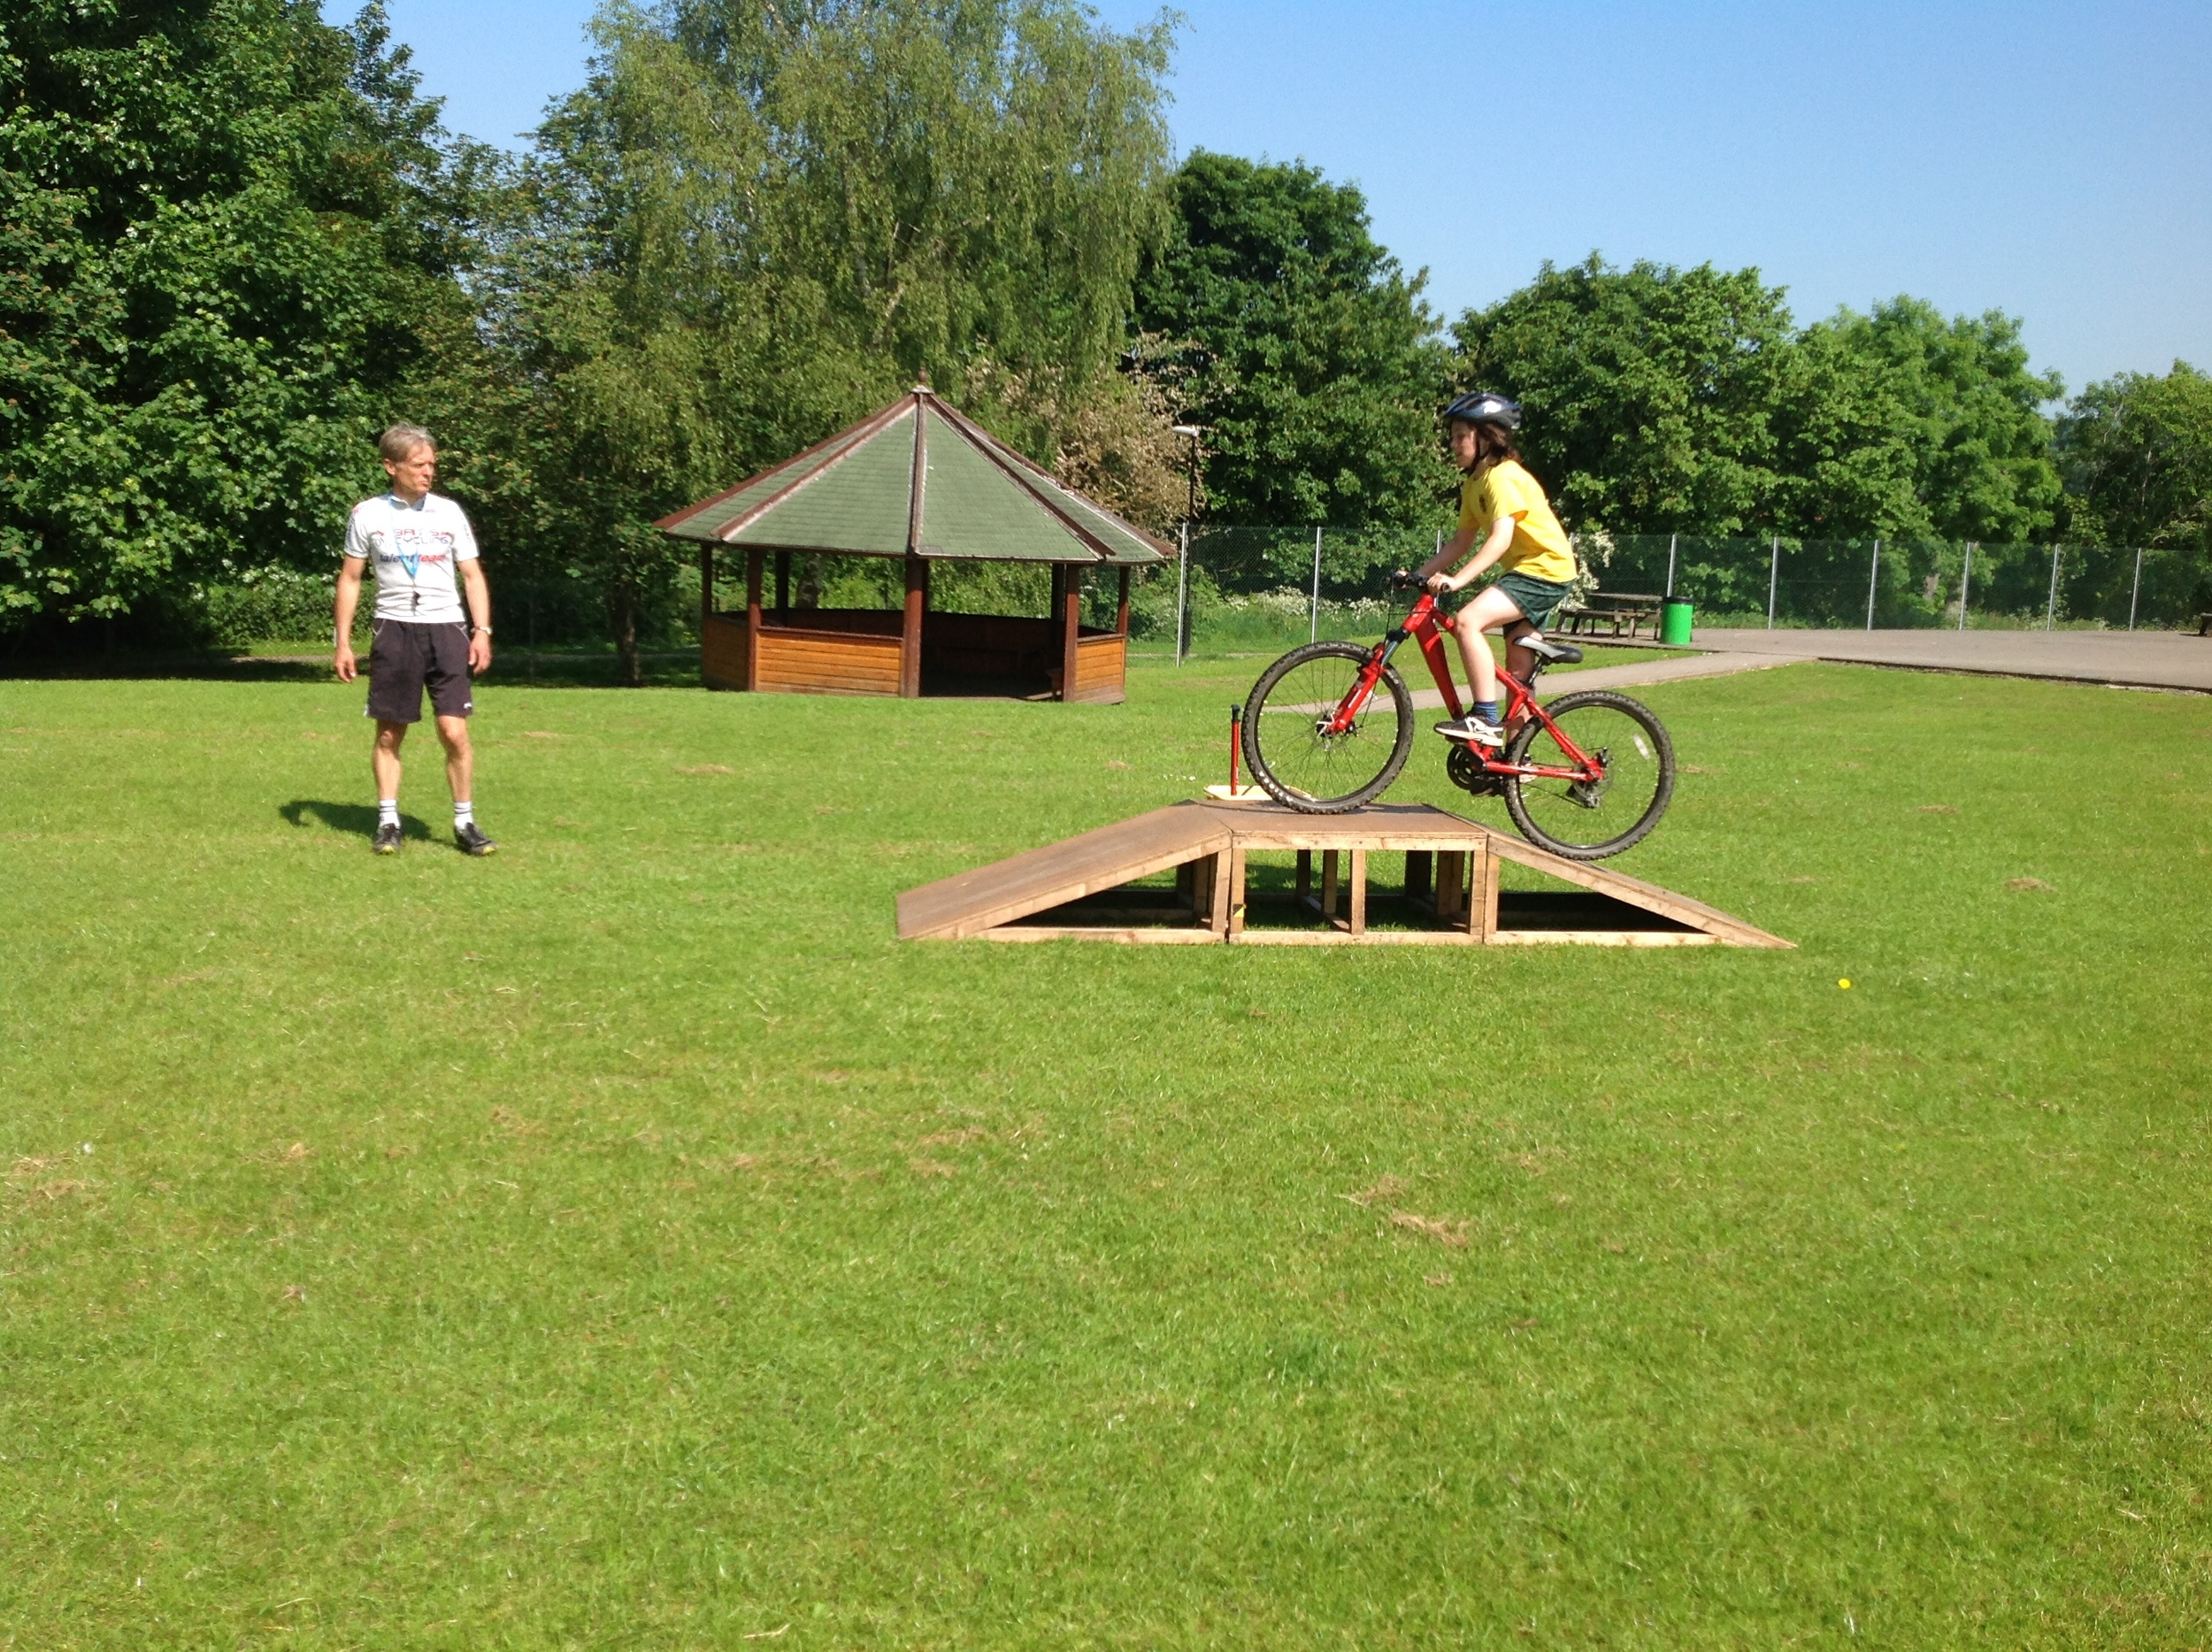 Bike handling ability .  Up and over the ramp.